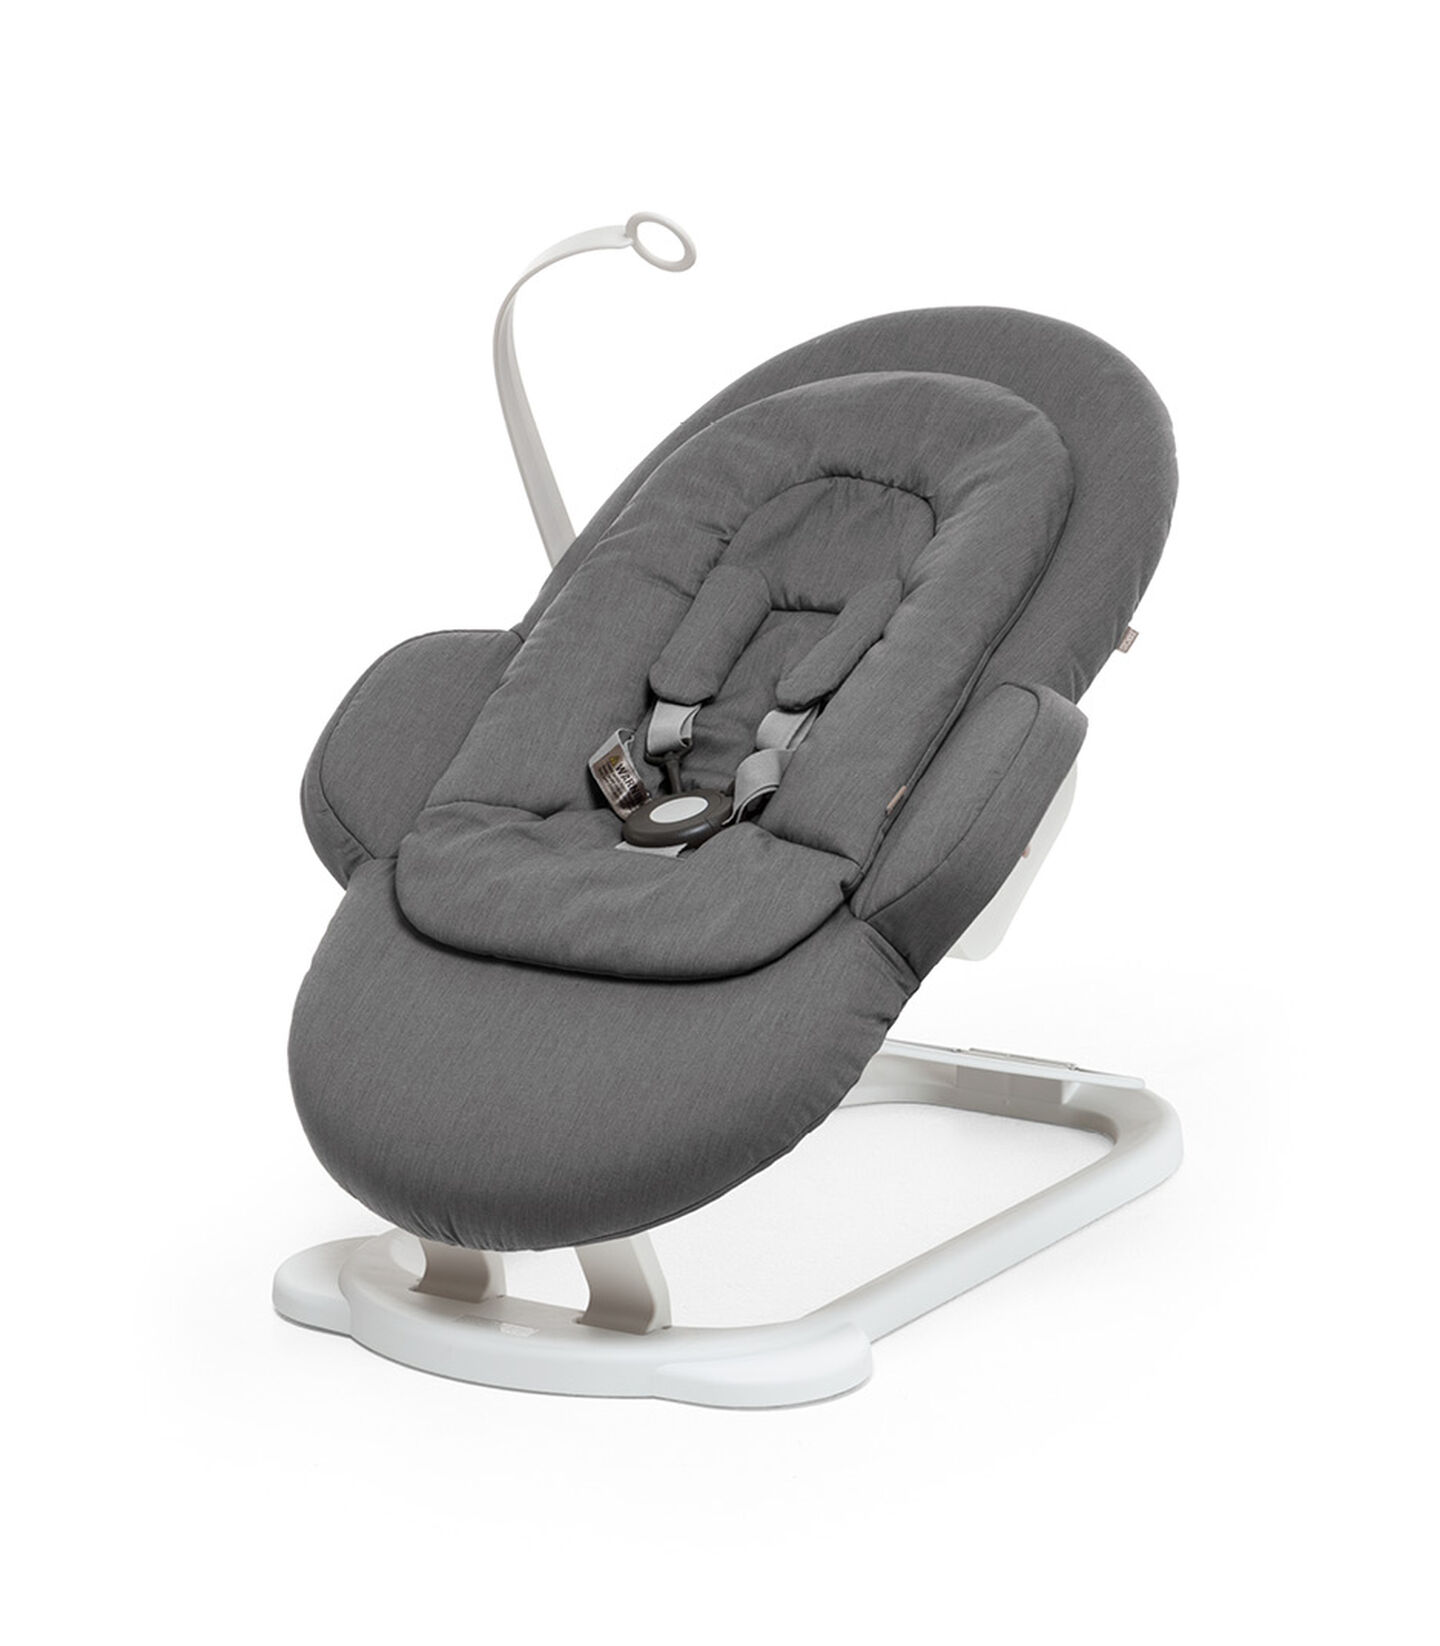 Stokke® Steps Bouncer in Deep Grey with White Base and Toy Hanger. view 2